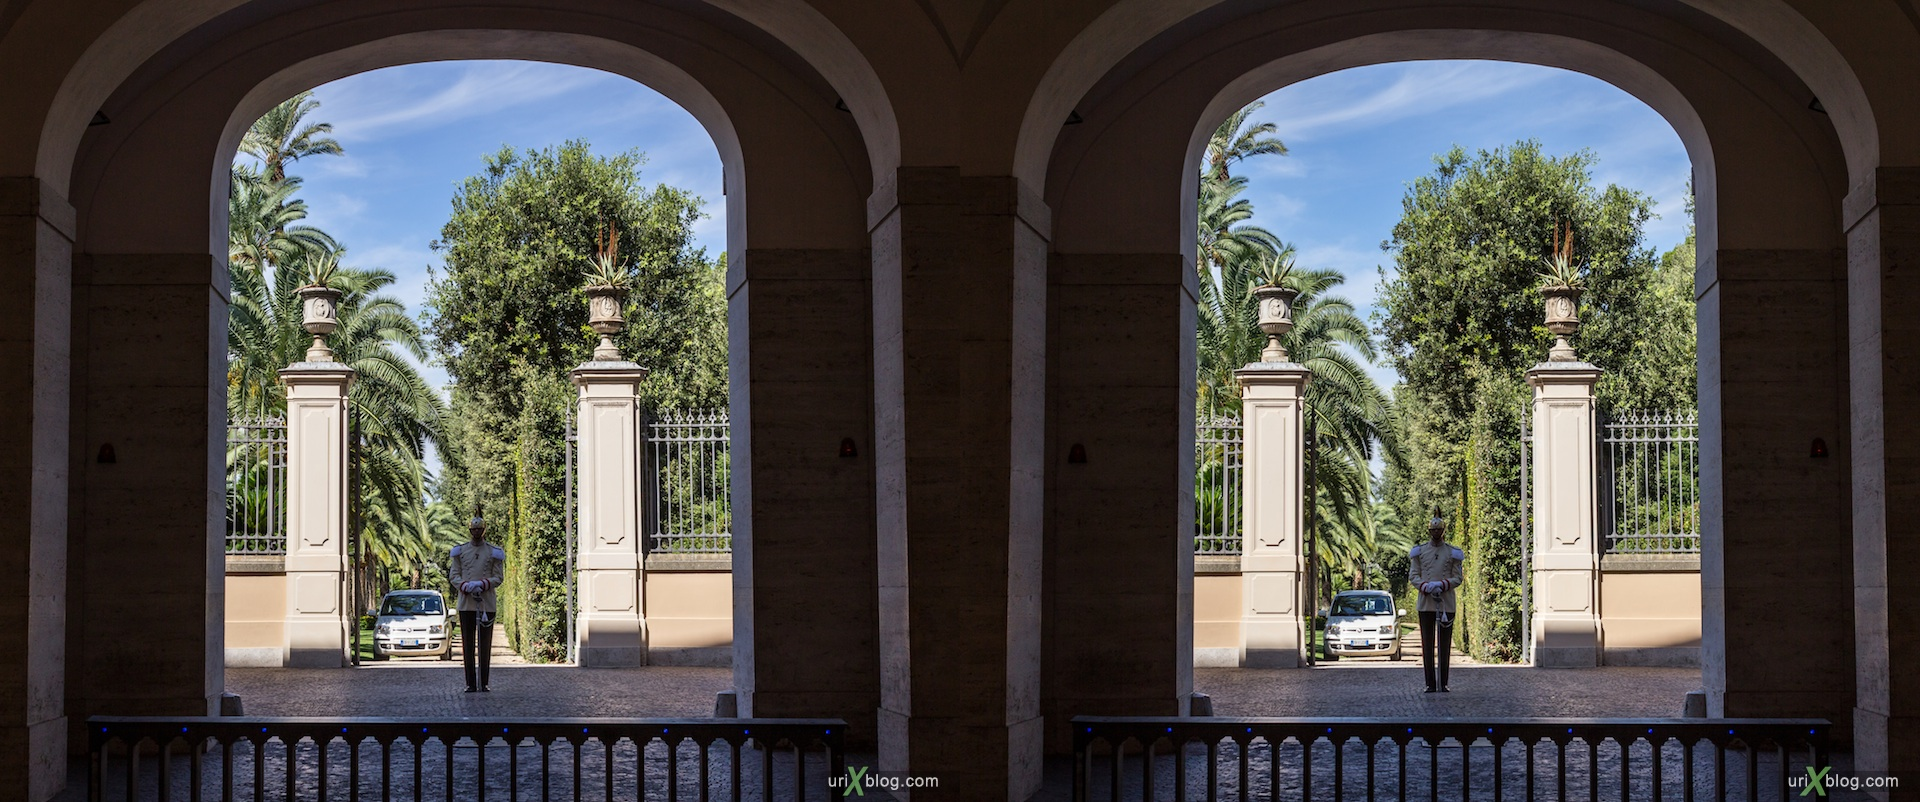 2012, Quirinal Palace, Residence of the President, soldier, Rome, Italy, Europe, 3D, stereo pair, cross-eyed, crossview, cross view stereo pair